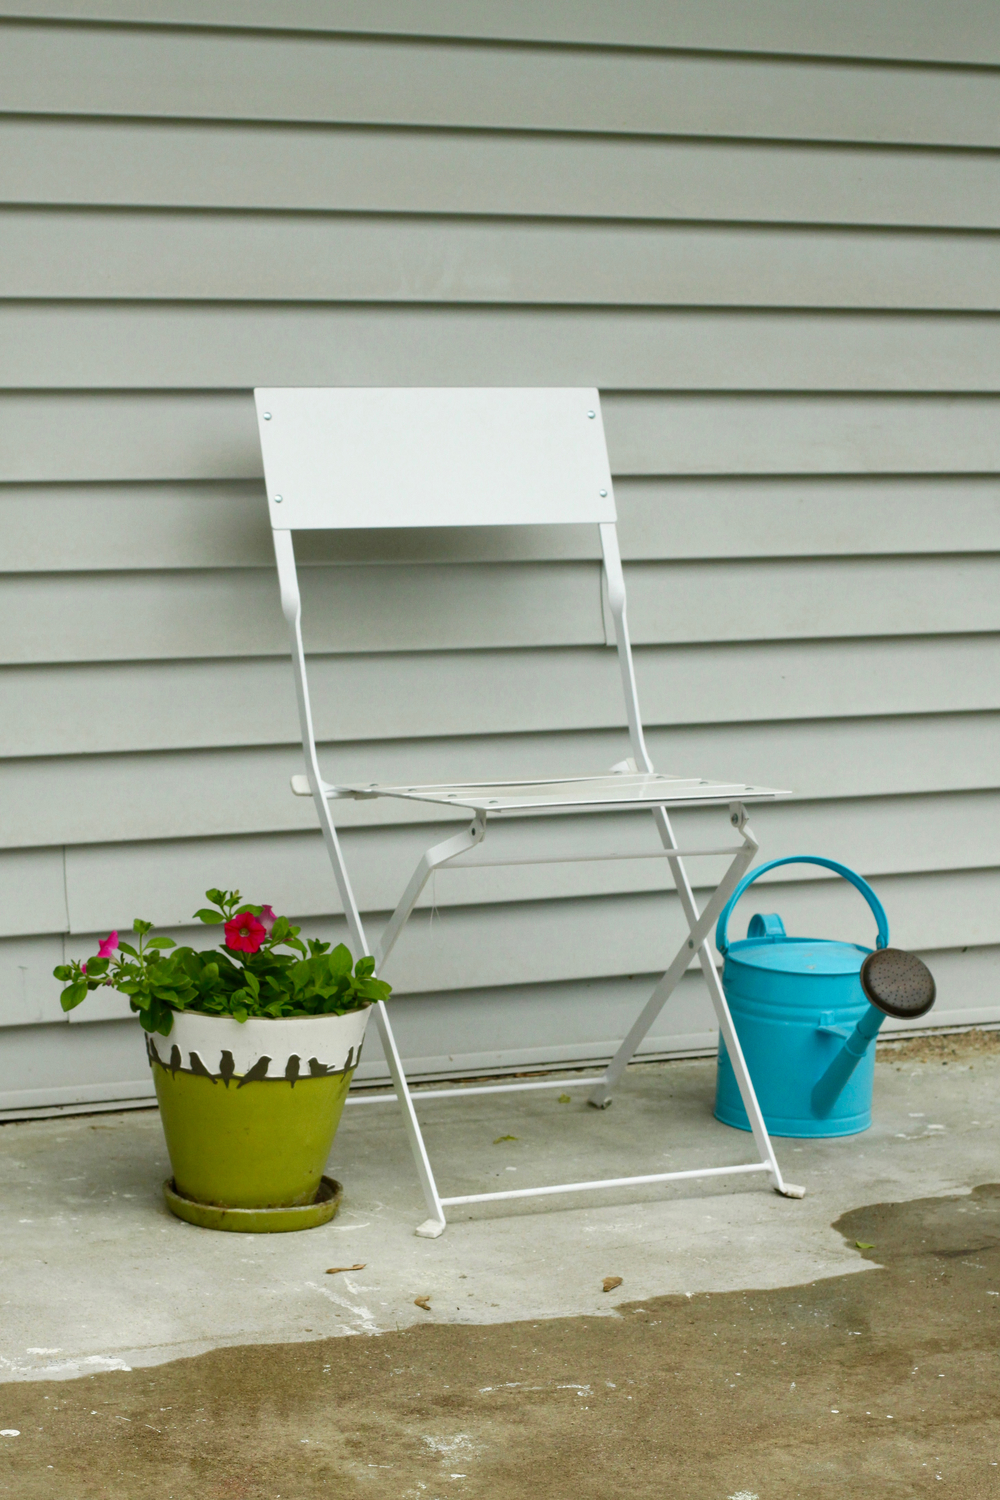 Garden chair, watering can, and flowers